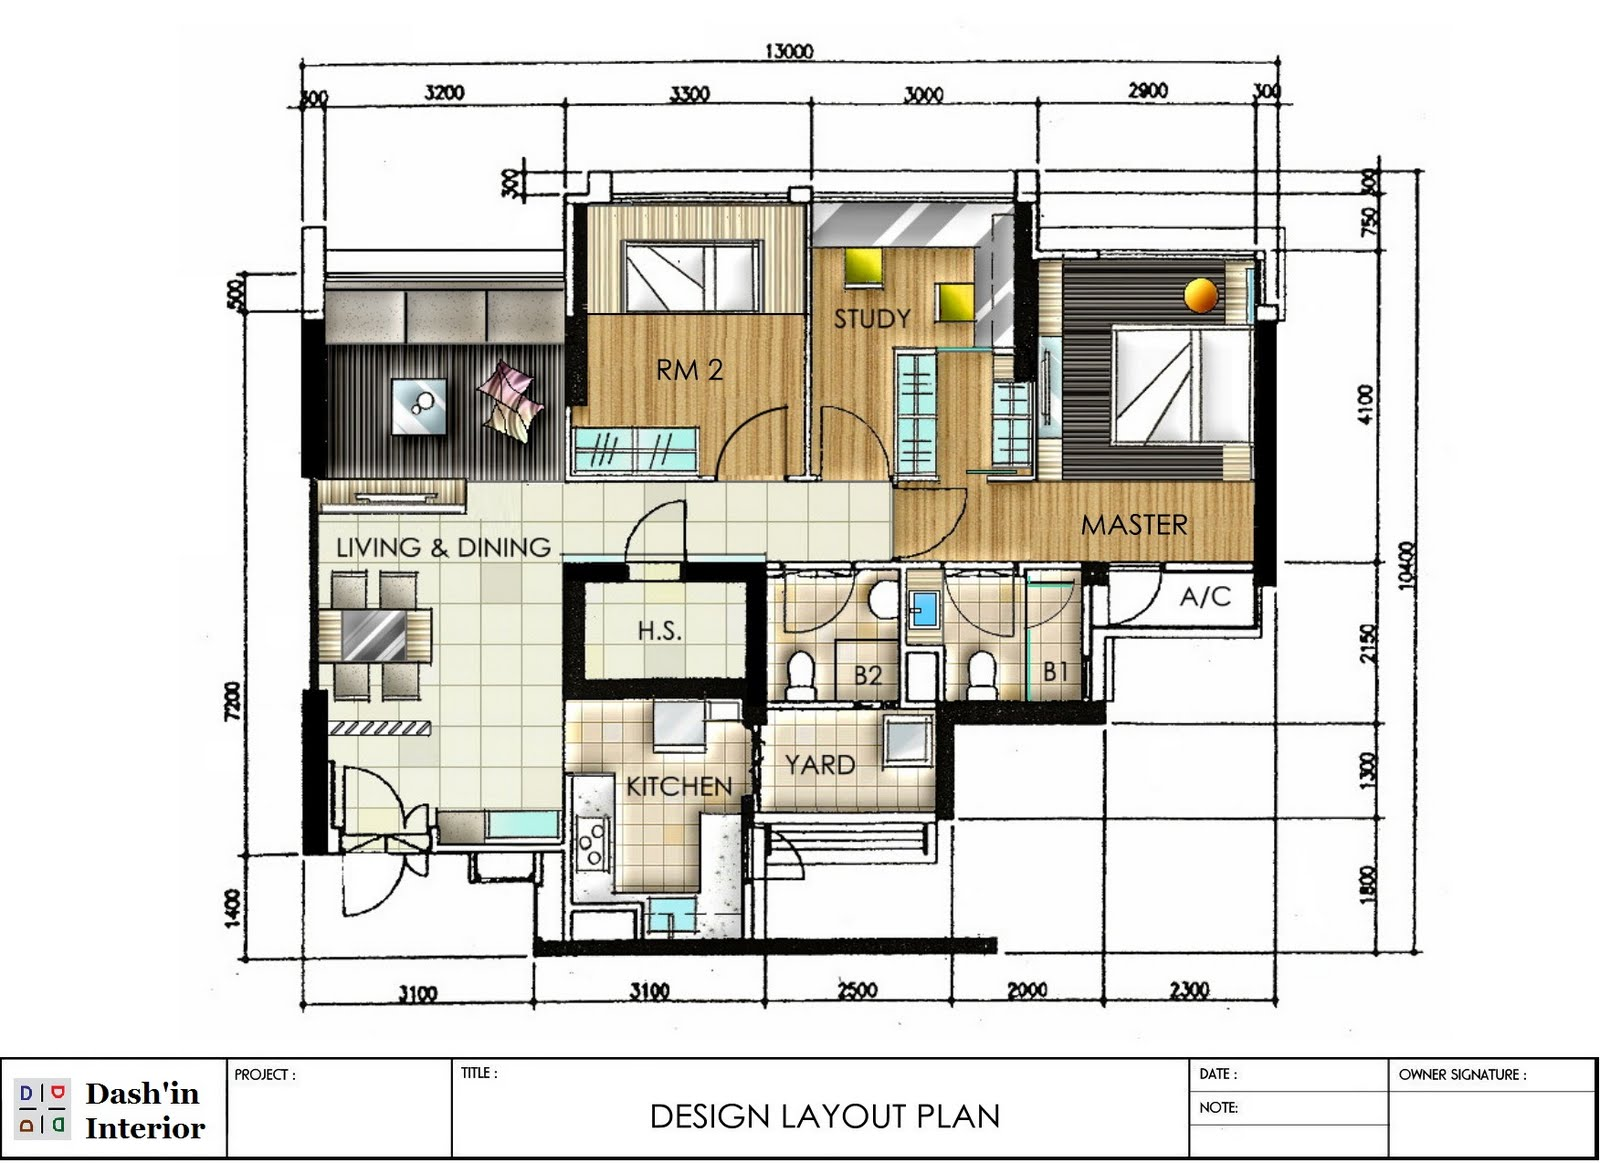 Dash 39 In Interior Hand Drawn Designs Floor Plan Layout